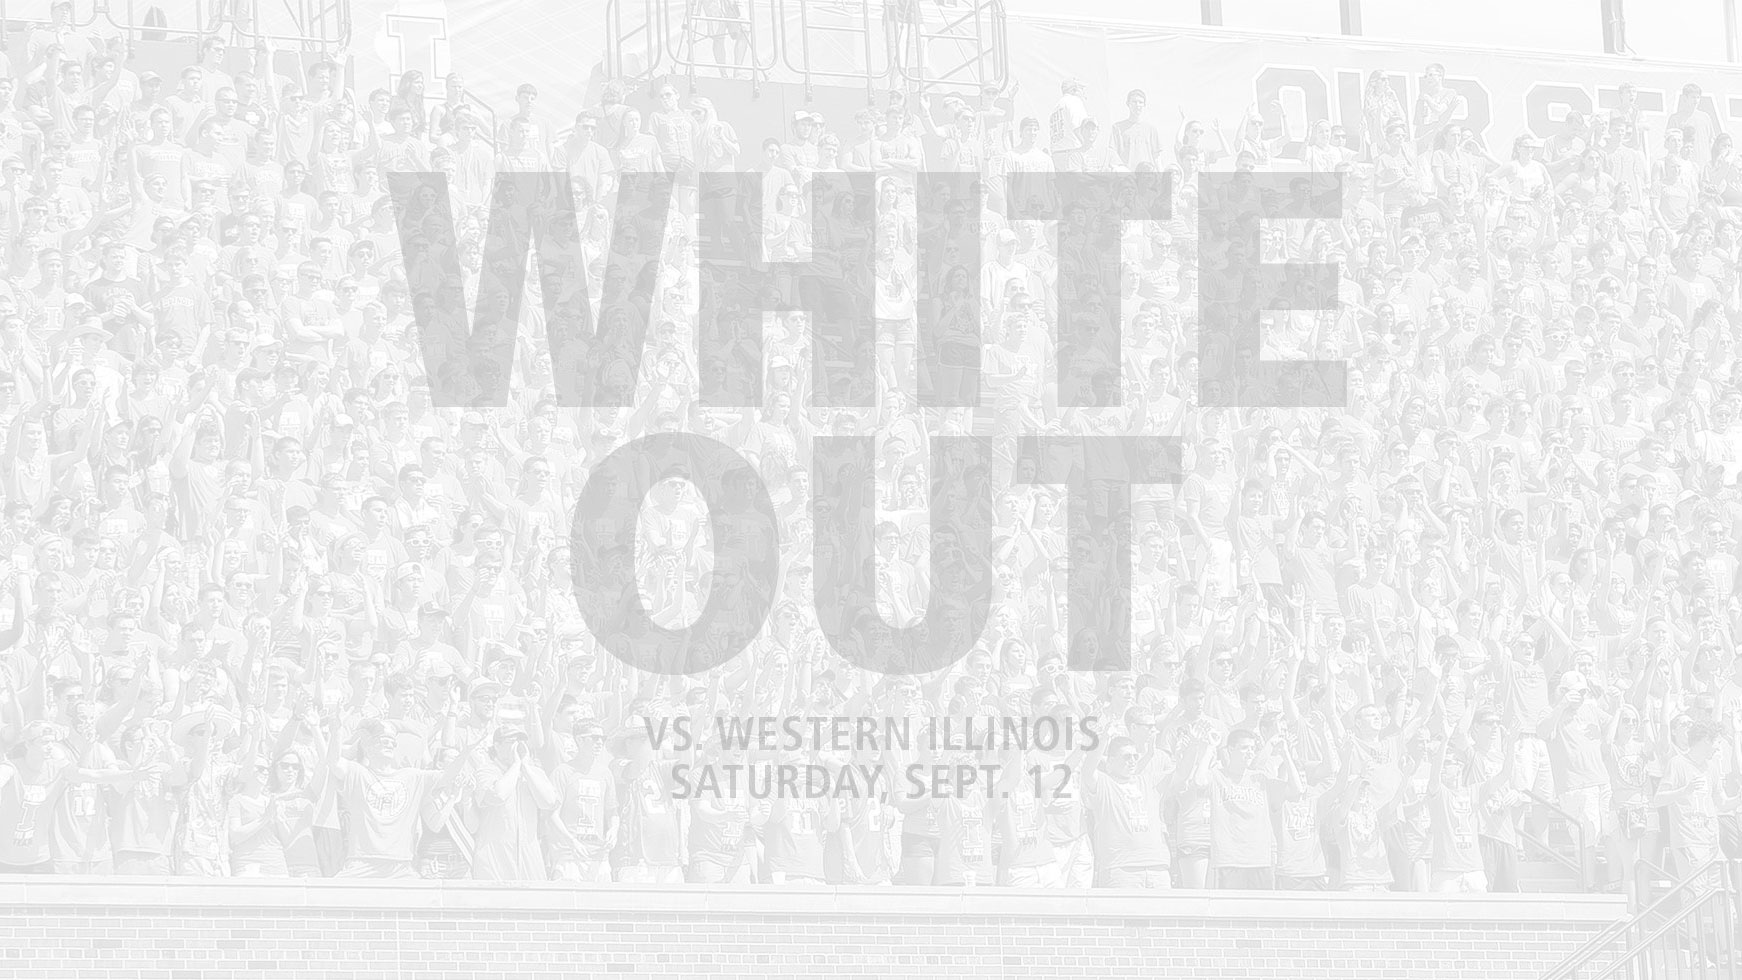 graphic image for the 'white out' promotion